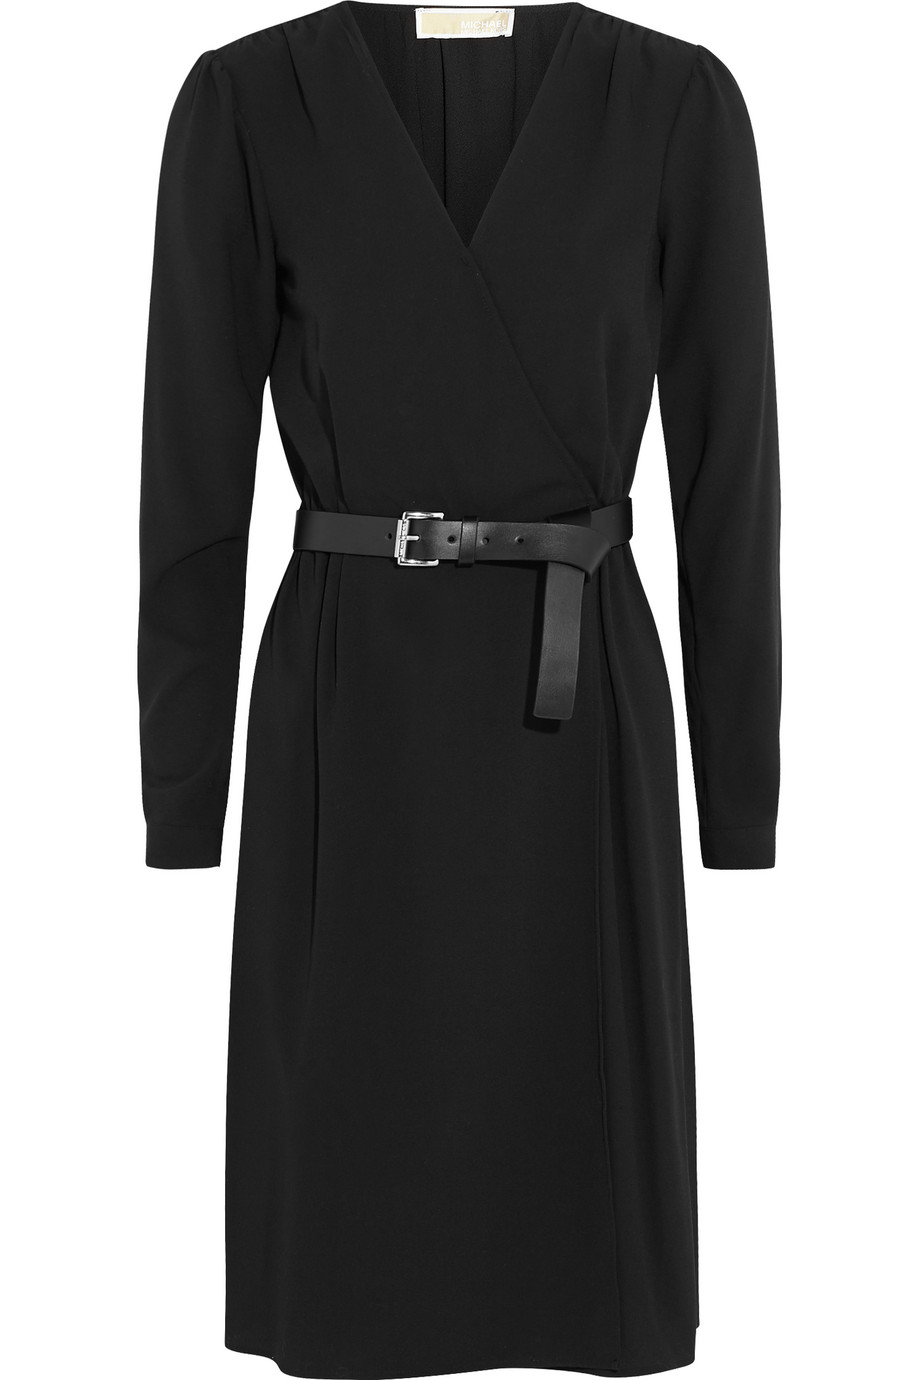 Belted Wrap-Effect Stretch-Crepe Dress, Michael Michael Kors, Black, Women's